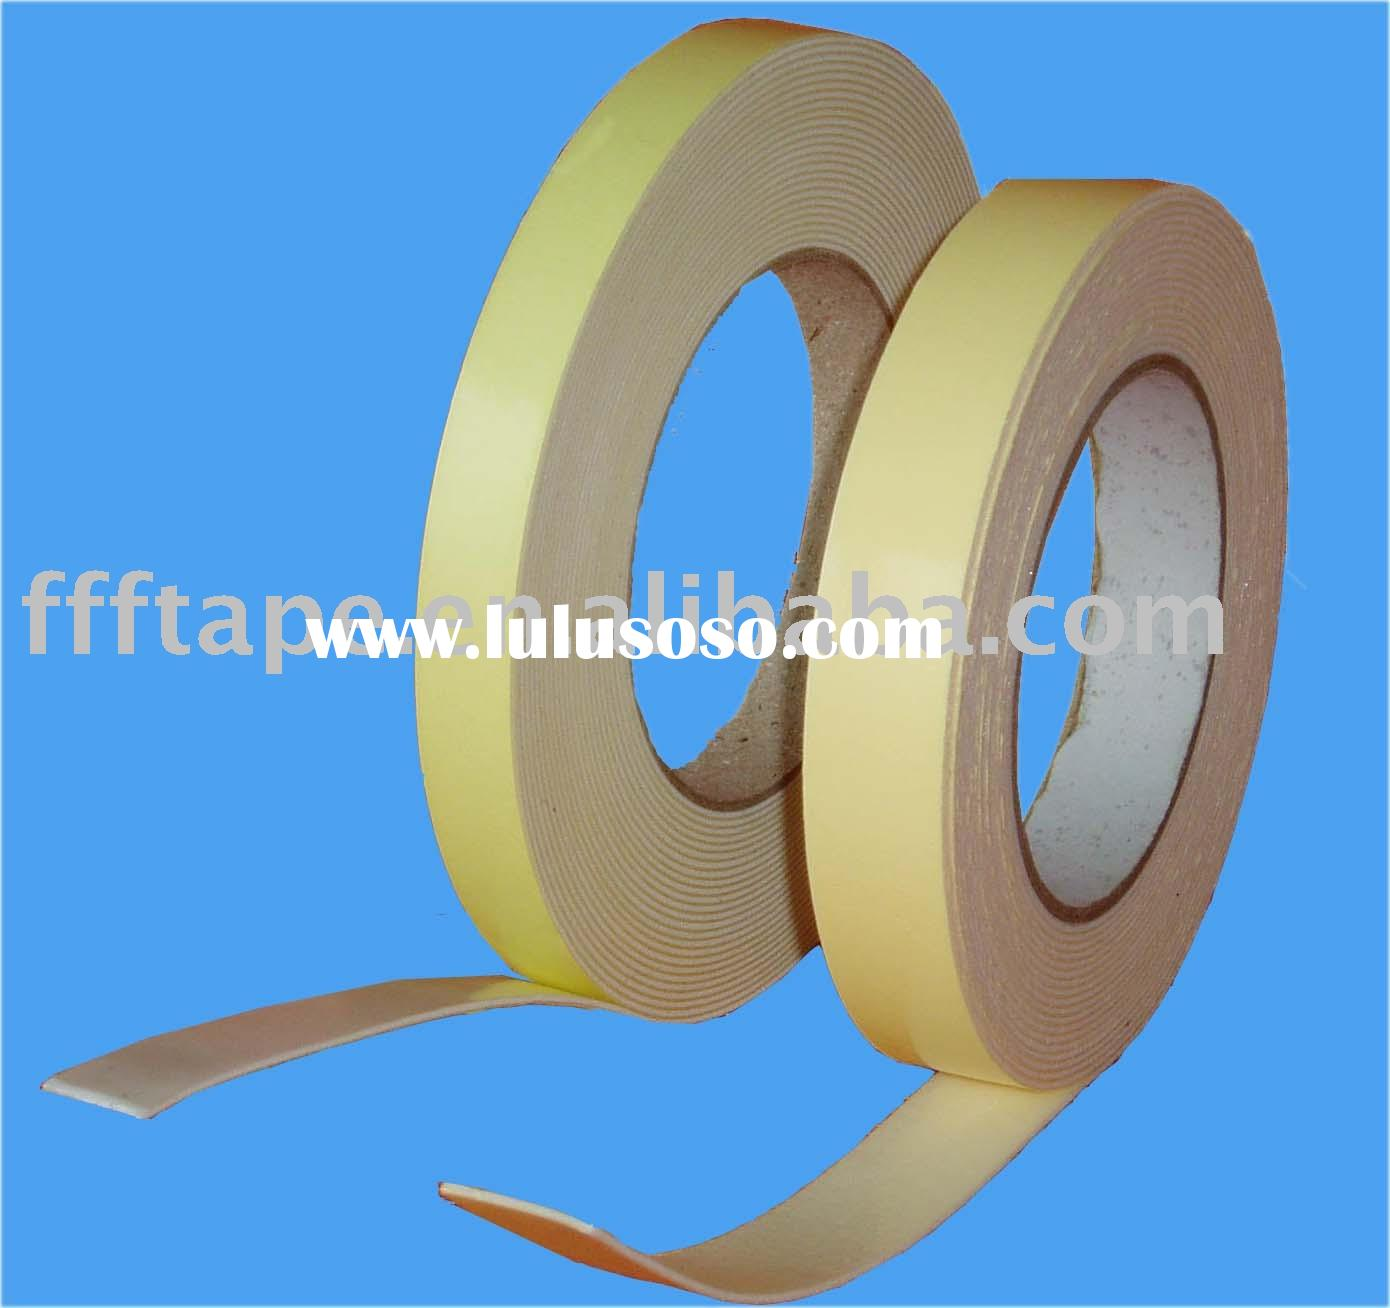 Heavy duty mounting tape/Hook Tape/double side tape/mounting tape/adhesive tape